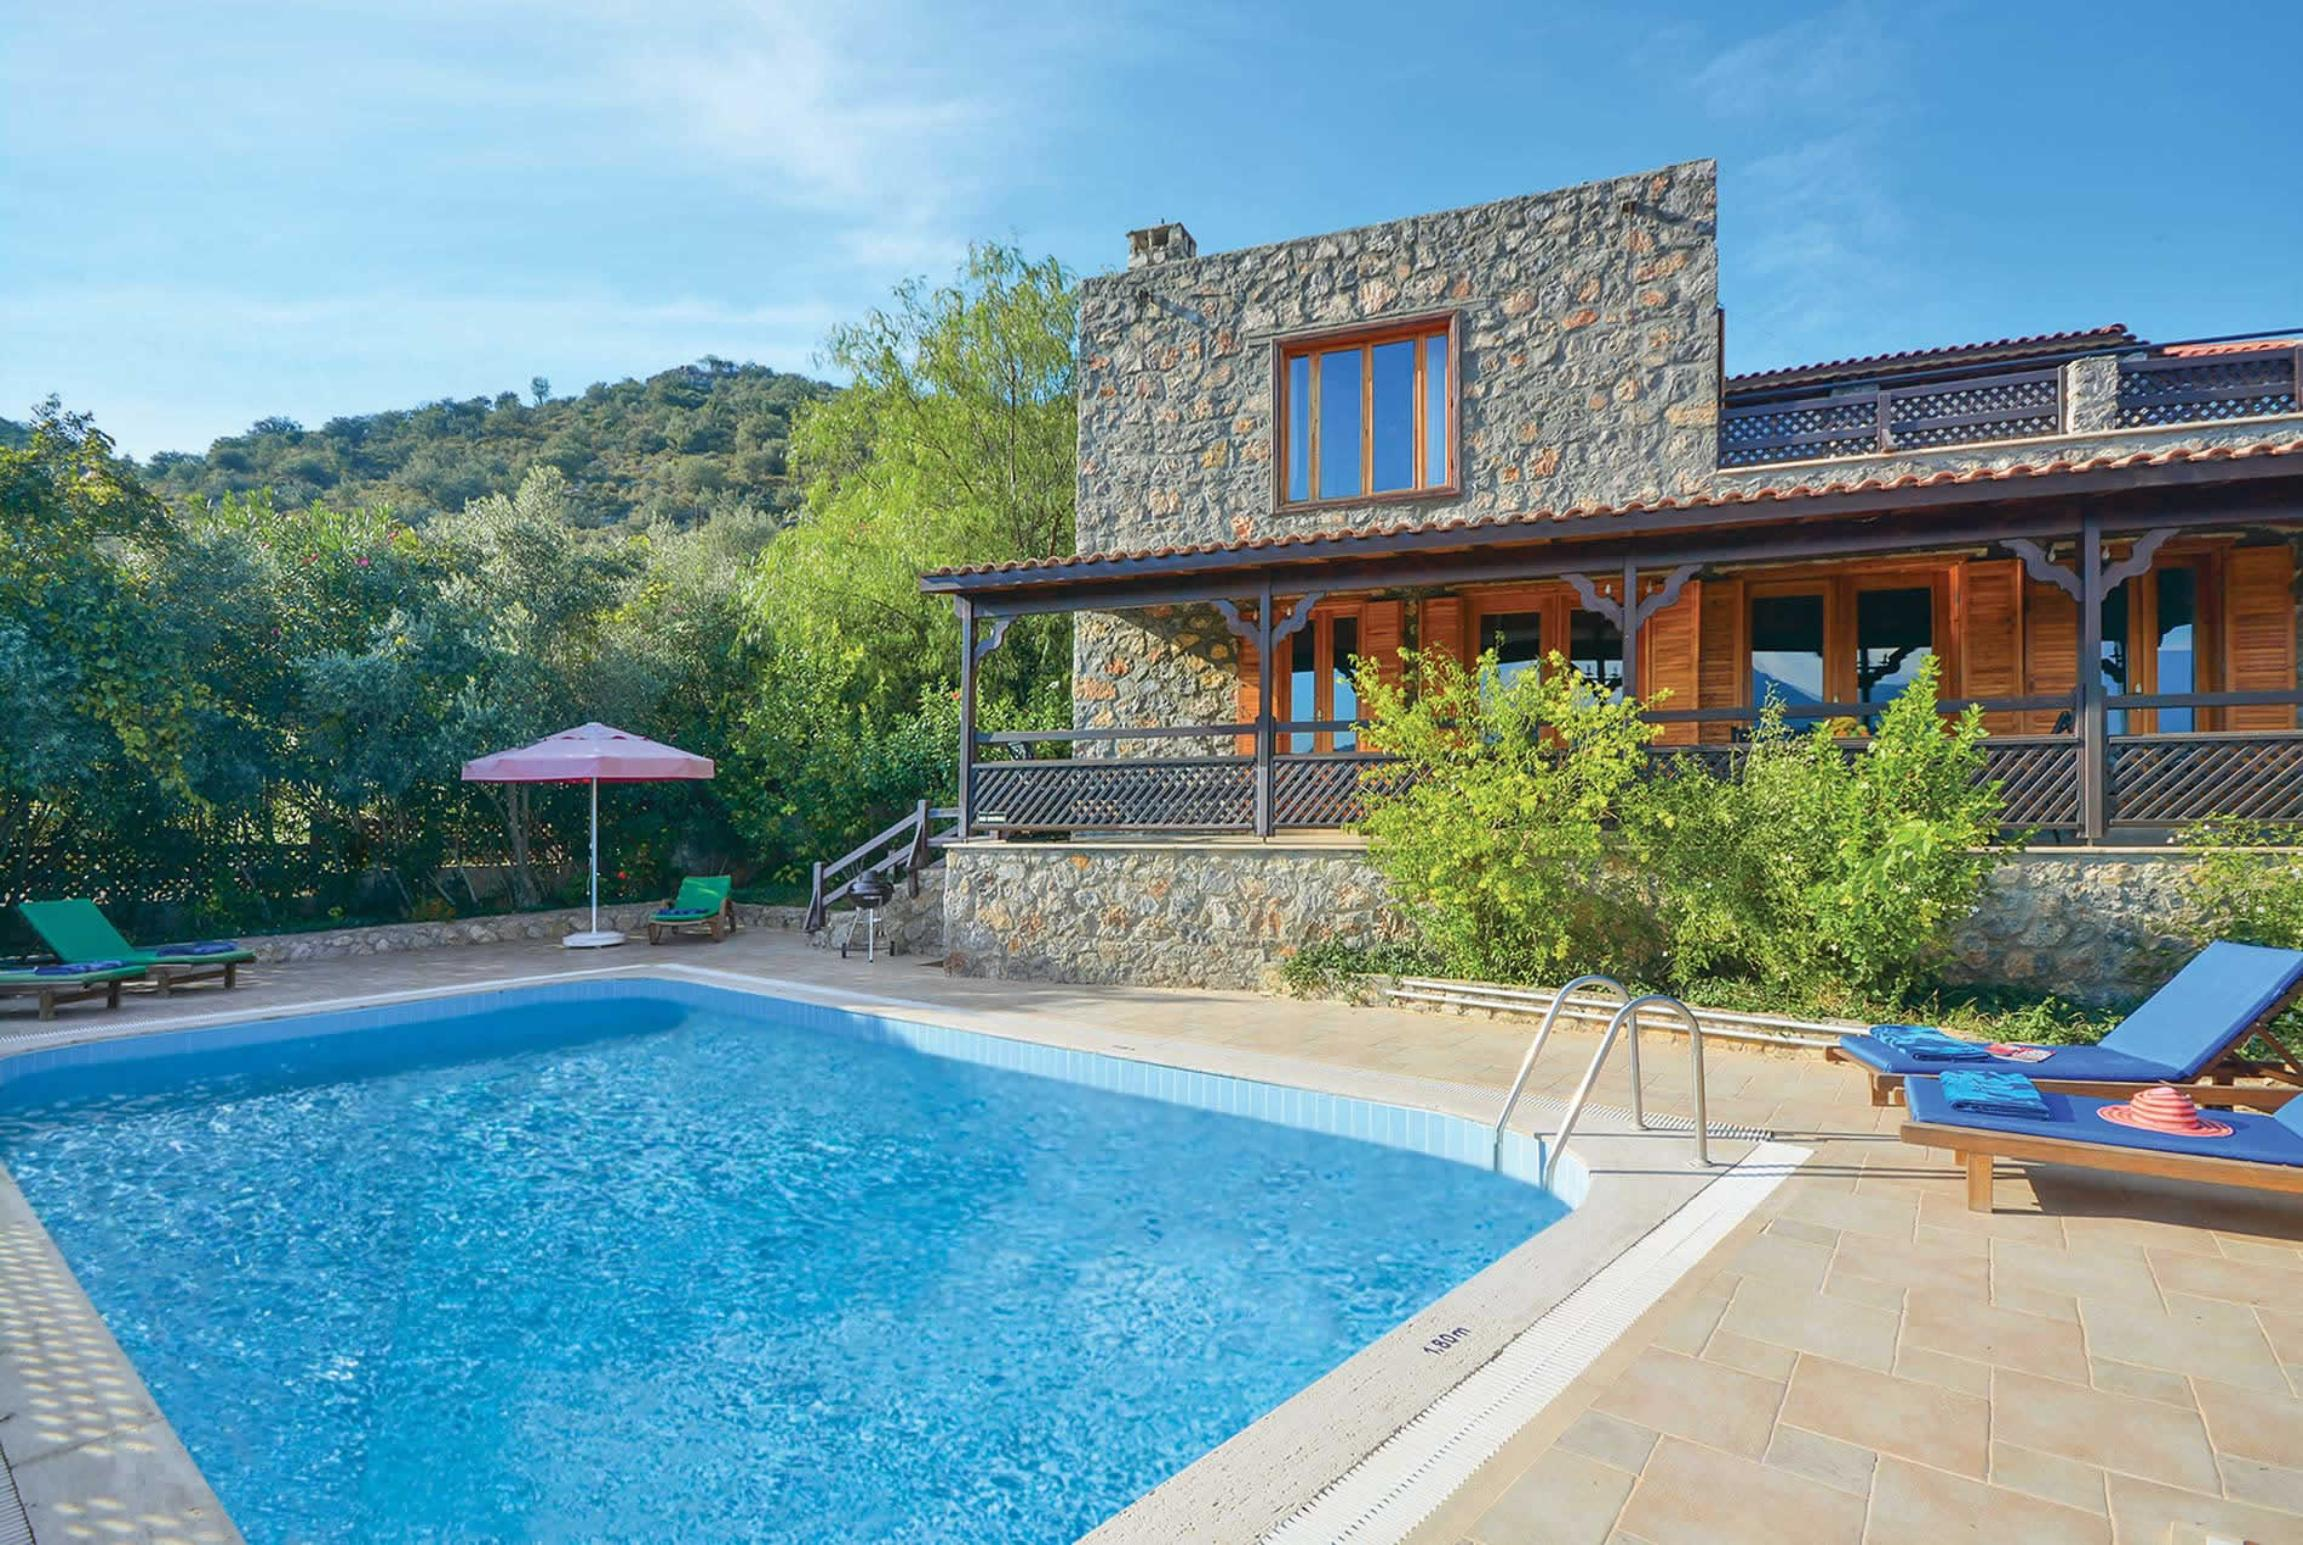 Read more about Barbaros Evi villa